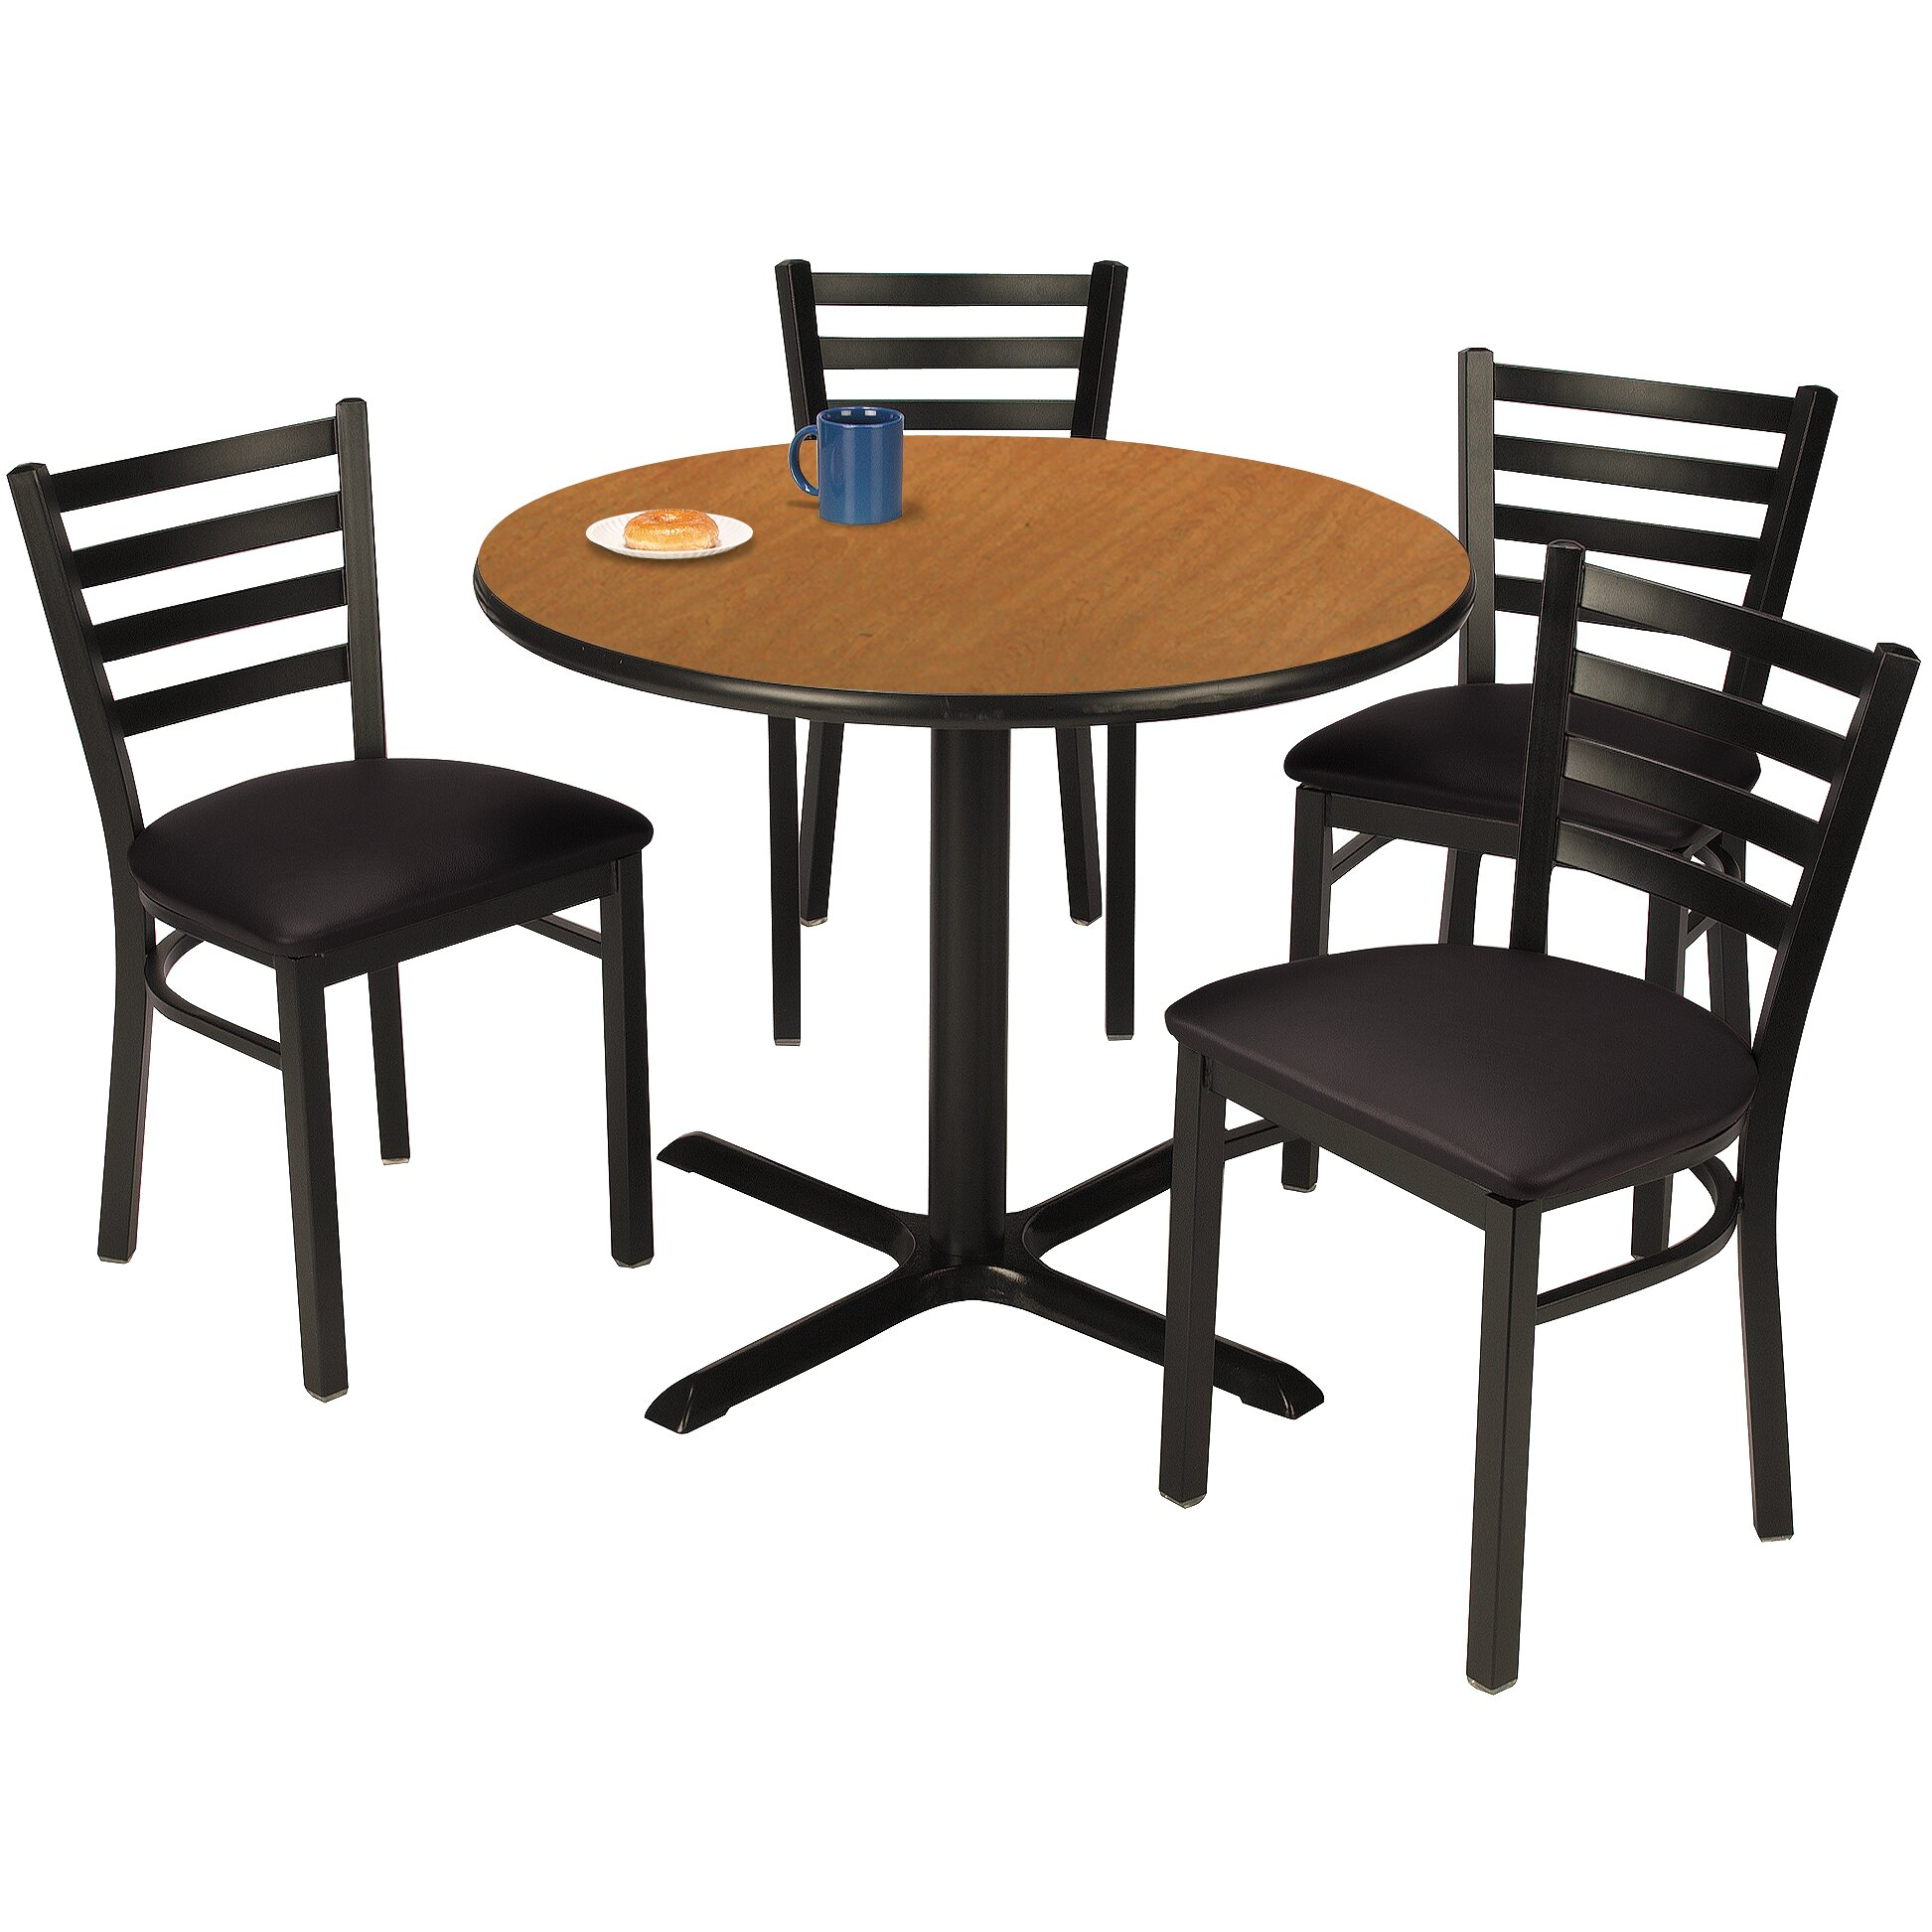 Round Table Pads For Dining Room Tables Round Table Pads For Dining Room Tables